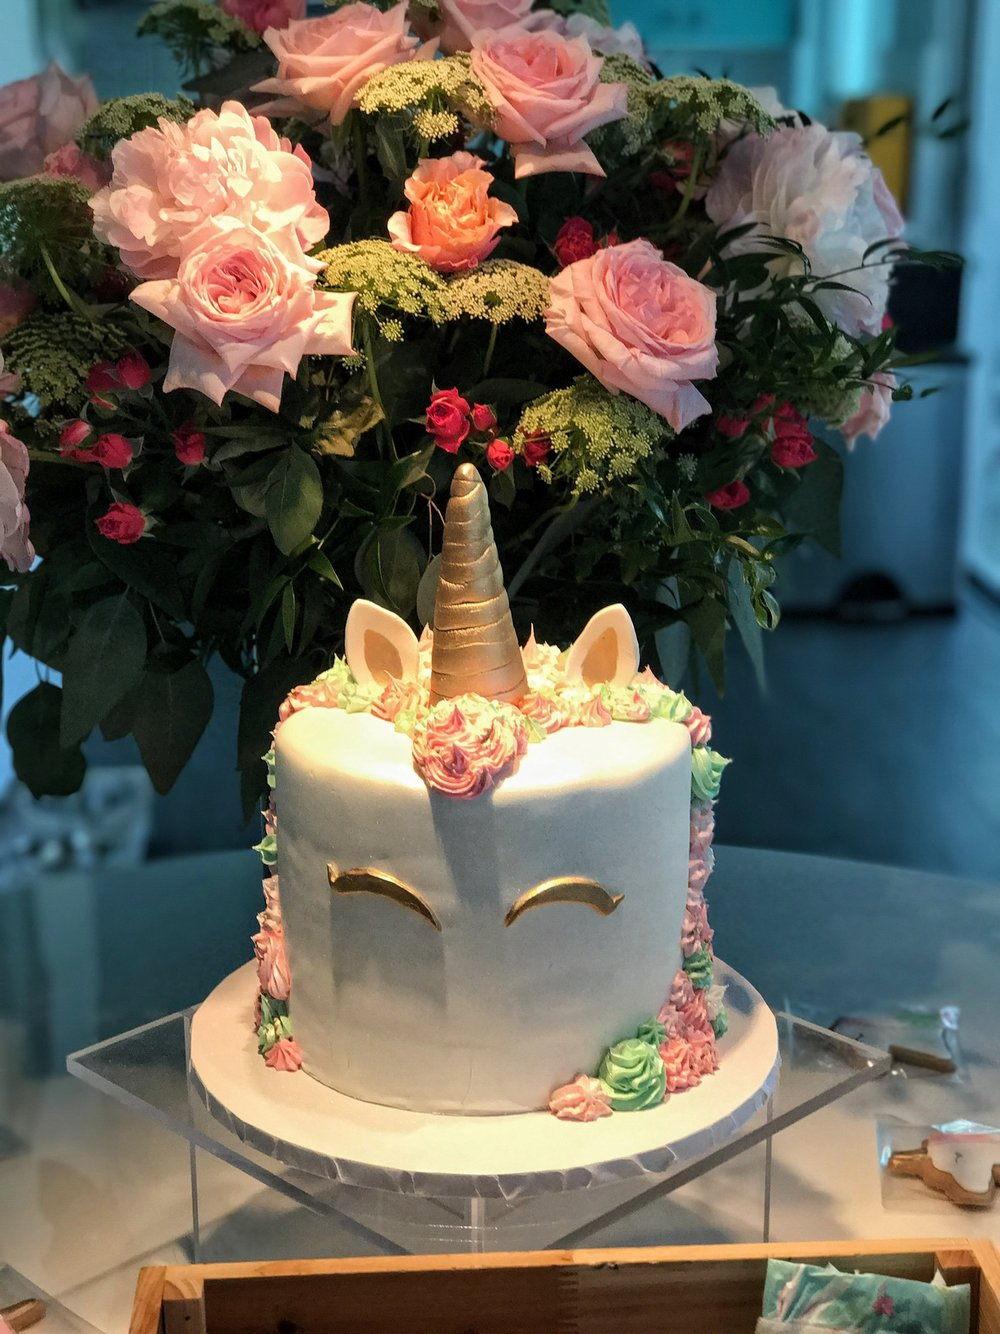 - A touch of whimsy with sparkling unicorn cookies and a custom designed unicorn cake from